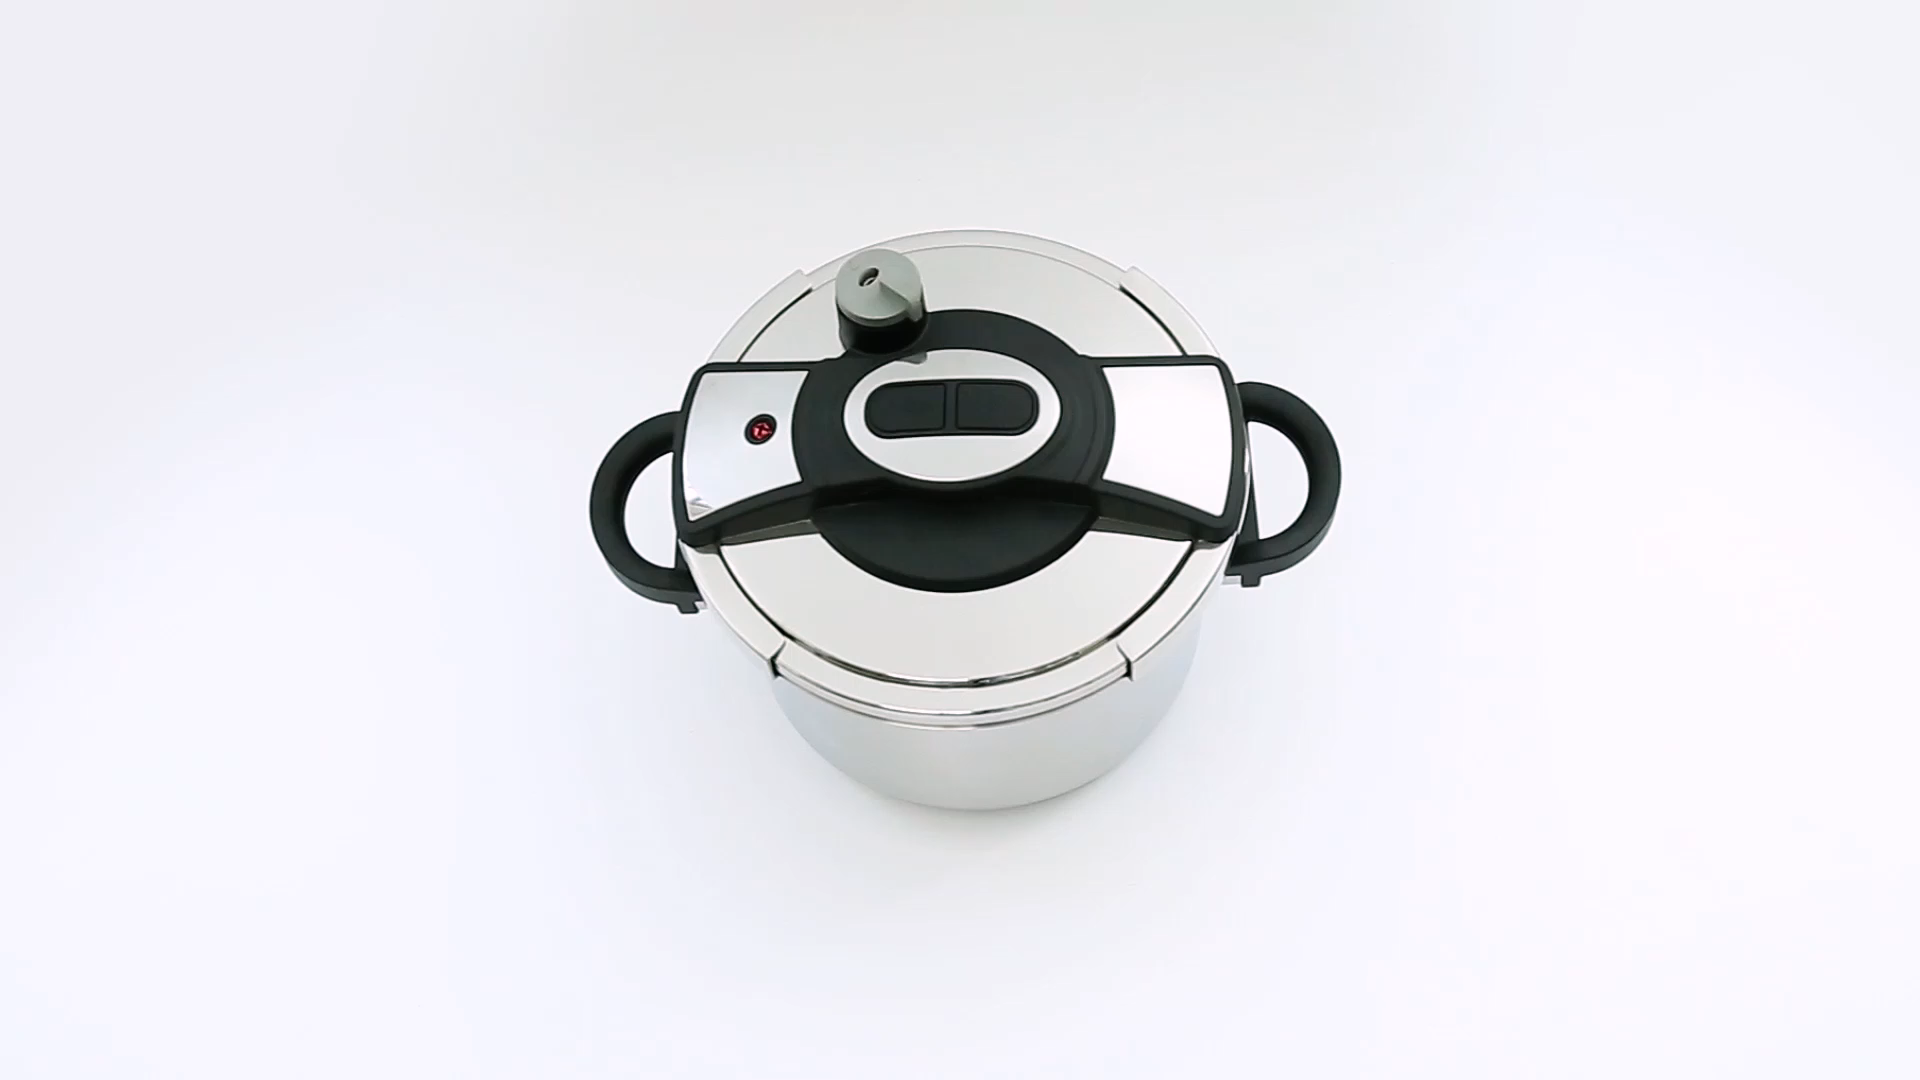 HOT SALES PRODUCT   304 STAINLESS STEEL INDUCTION ELECTRIC PRESSURE COOKER CE&GS   OPEN EASY OPERATION COOKWARE KITCHENWARE